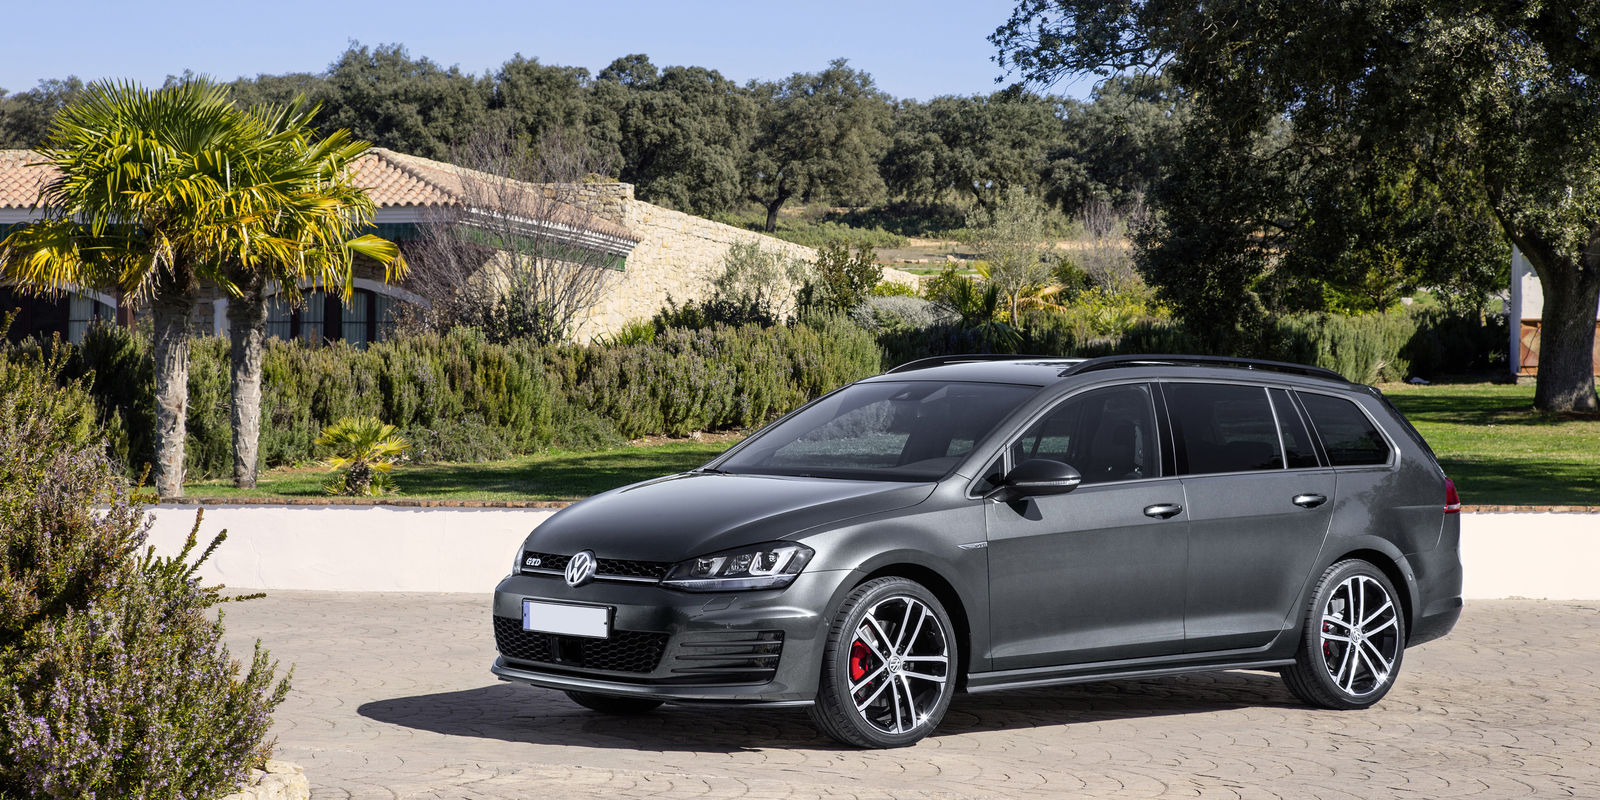 Volkswagen Golf Gtd Estate Review Carwow